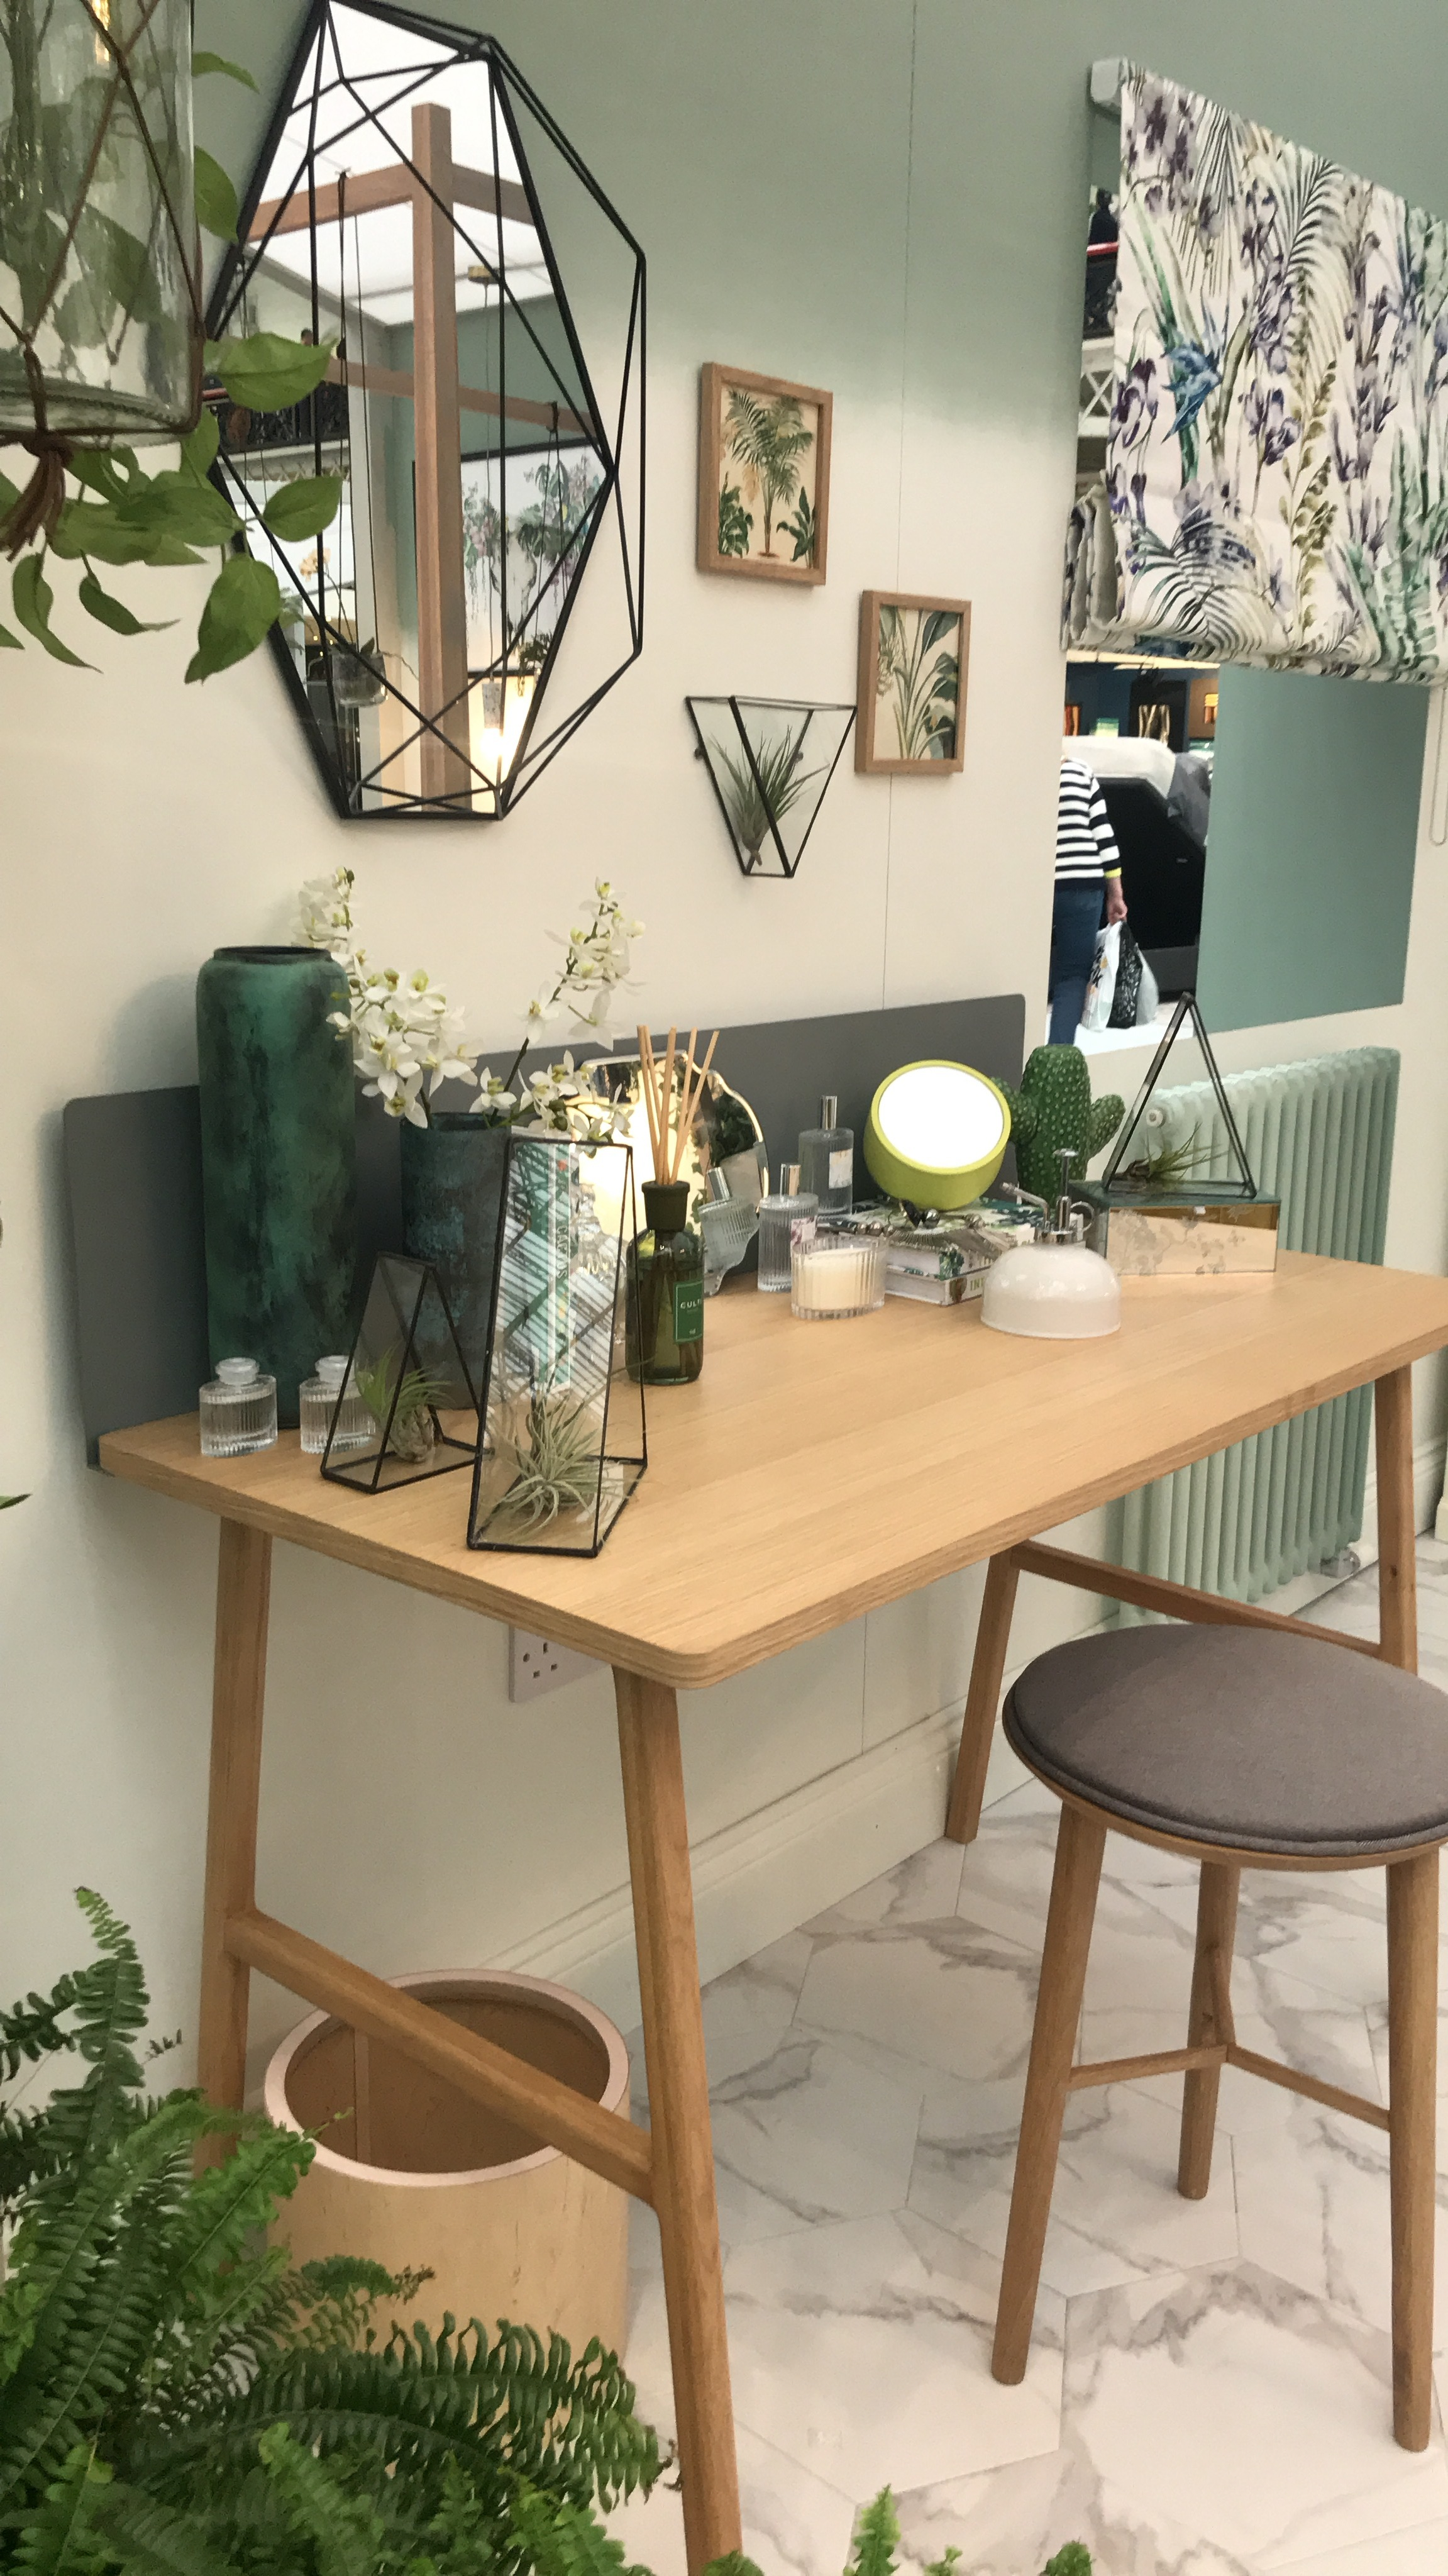 The Good Homes Magazine roomsets at the Ideal Home Show 2018.